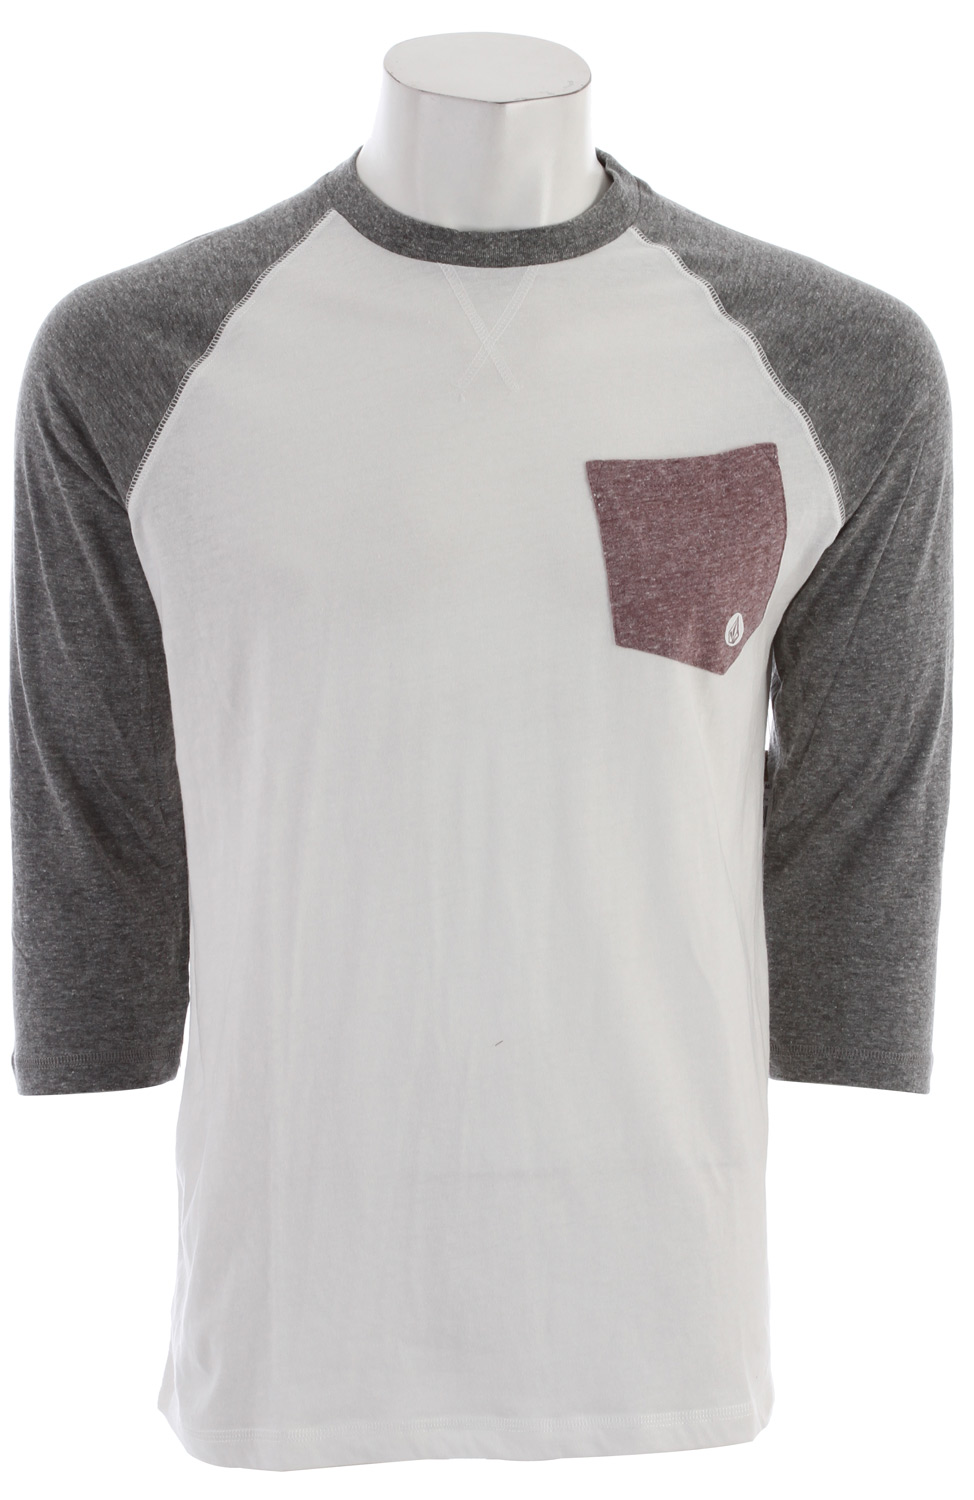 Surf Key Features of the Volcom Base Line 3/4 Sleeve Raglan: 3/4 sleeve Contrast pocket & sleeves Slim fit 65% recycled cotton/35% polyester jersey V.Co-Logical Collection - $24.95